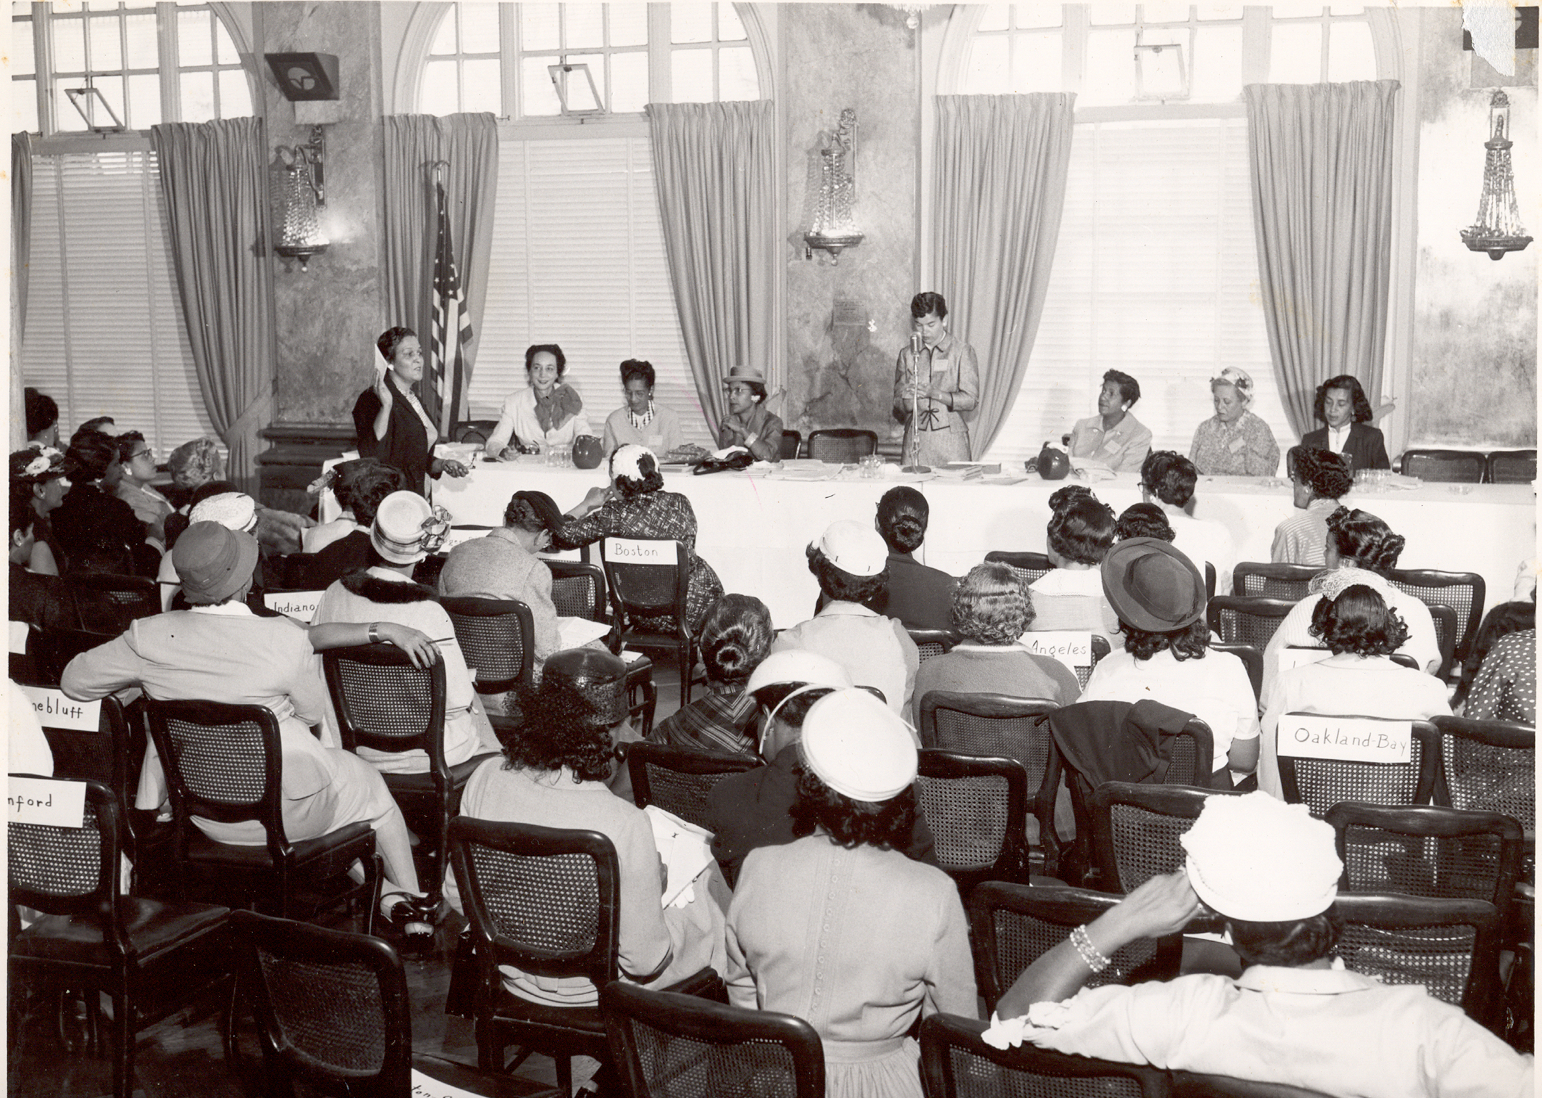 First Jack & Jill Session in San Francisco, 1957 - Plenary Session